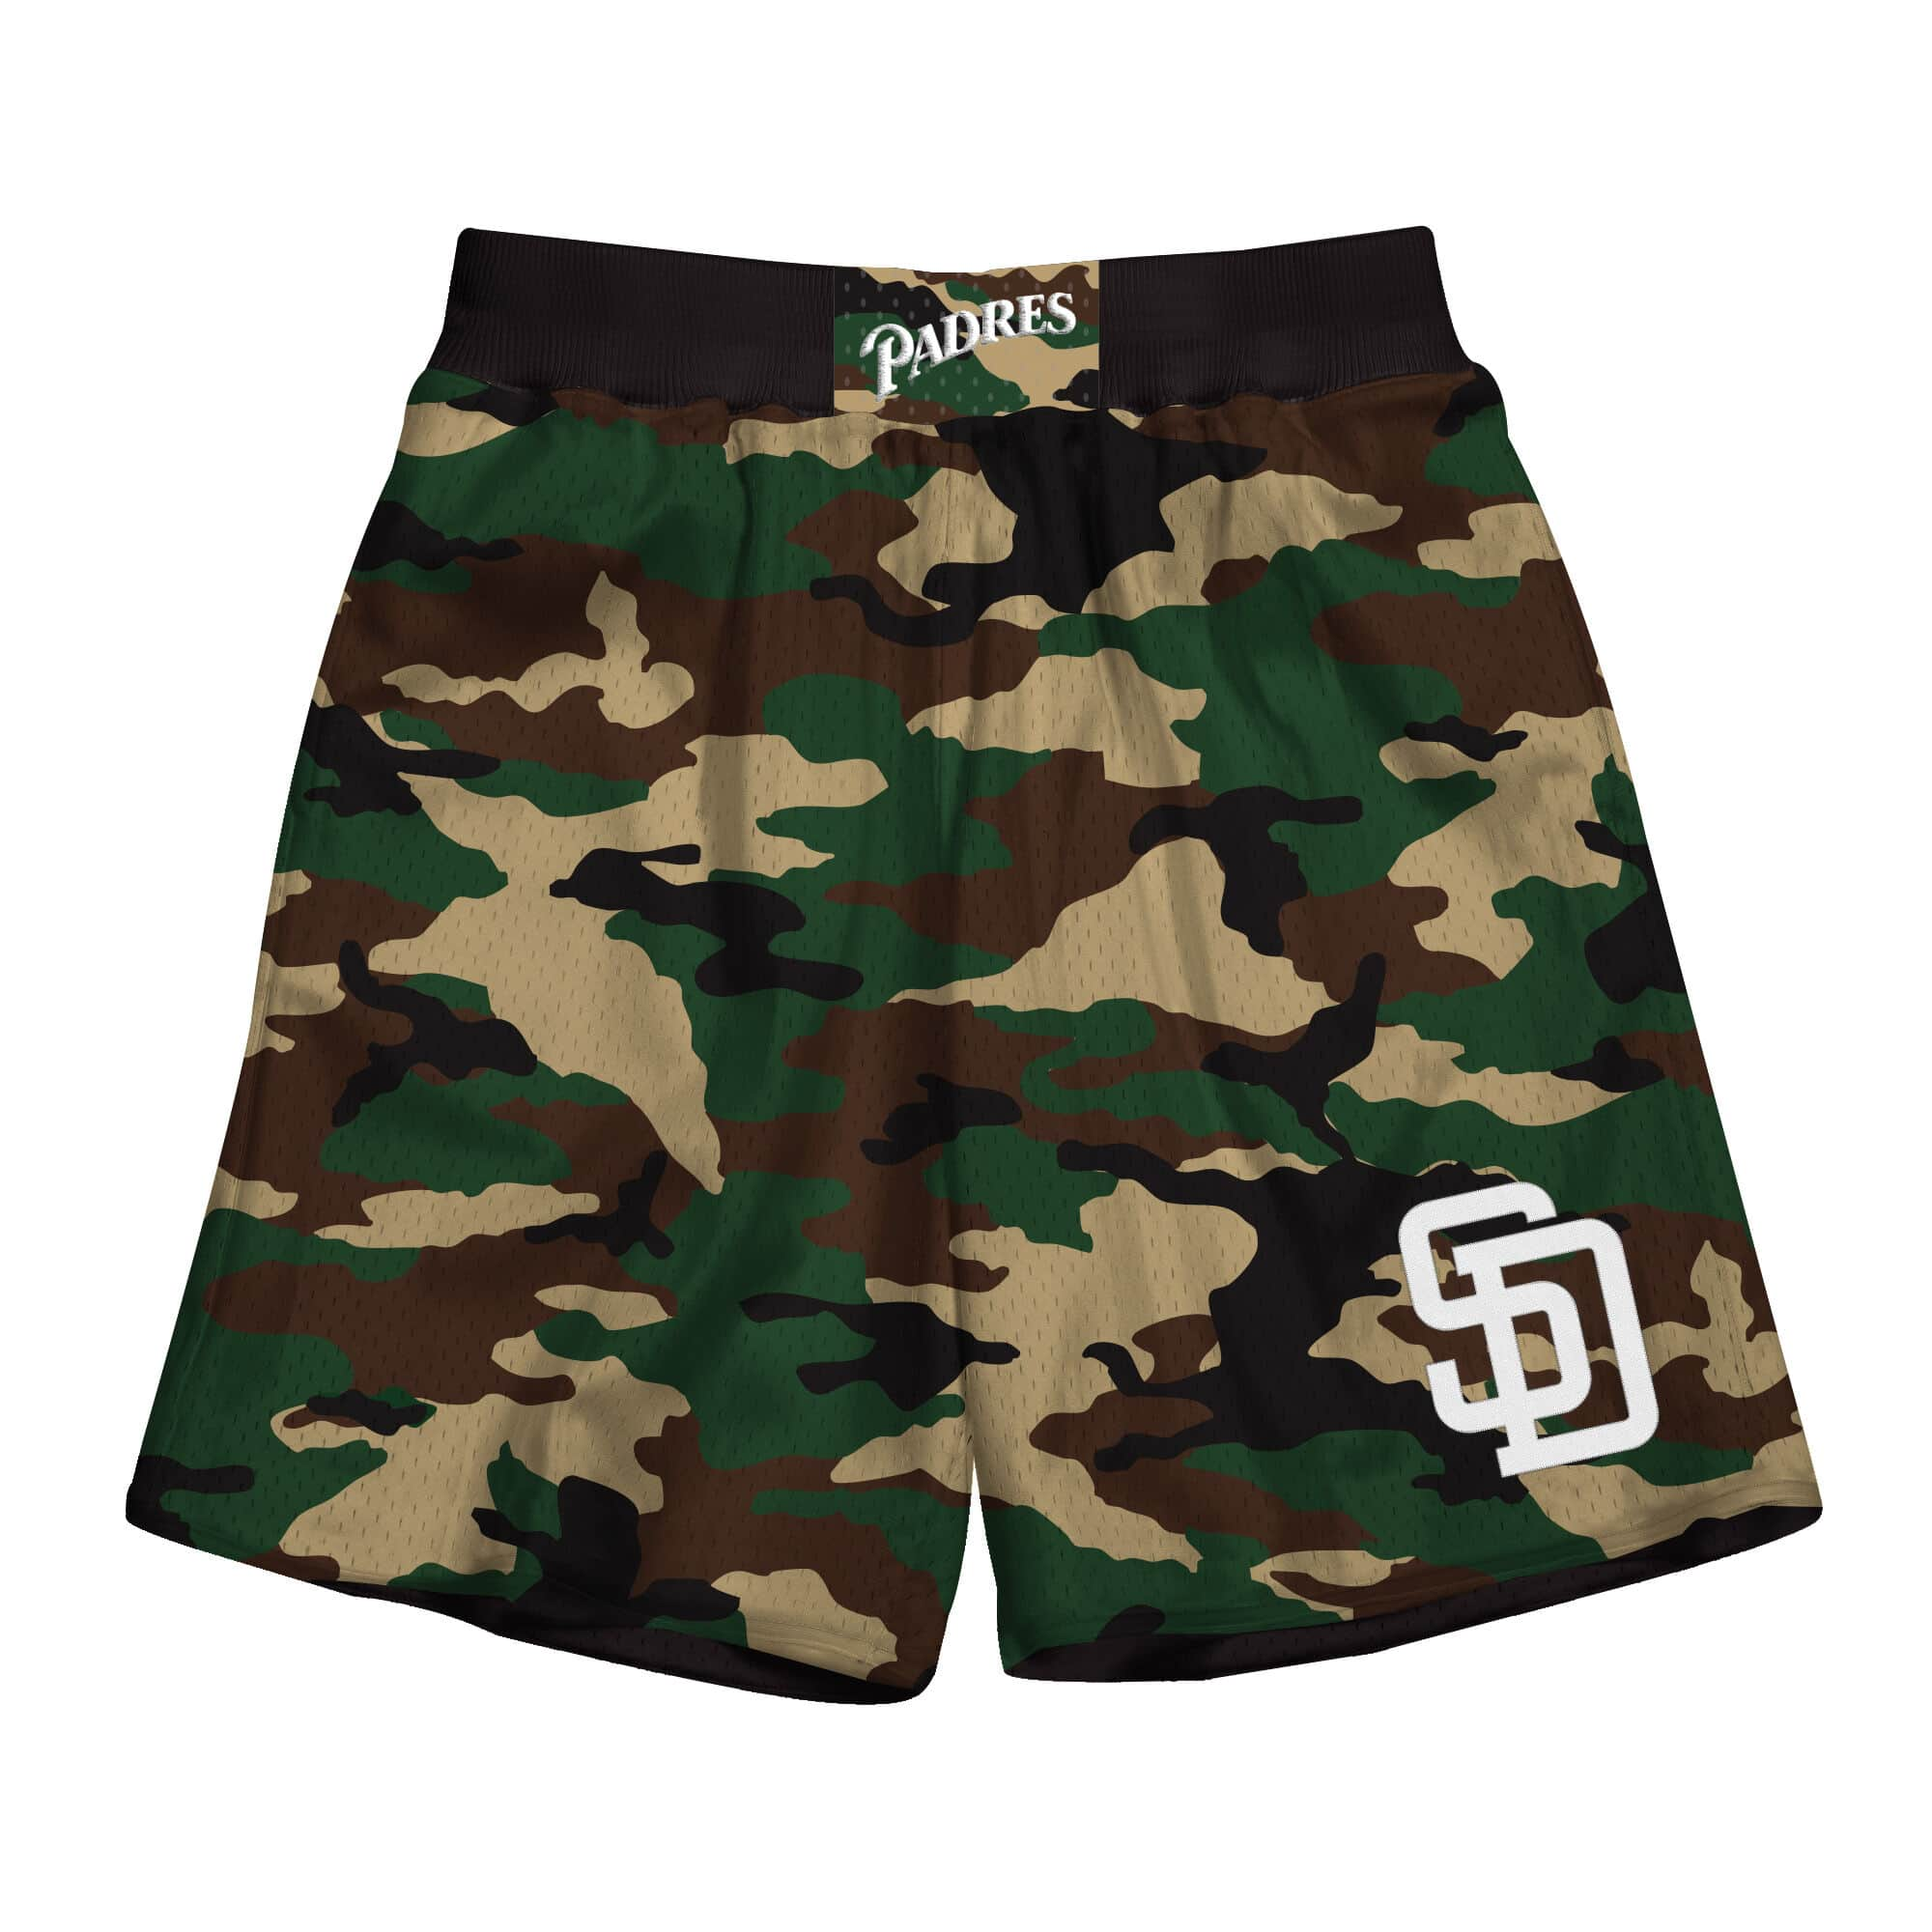 Returning Champions Shorts San Diego Padres